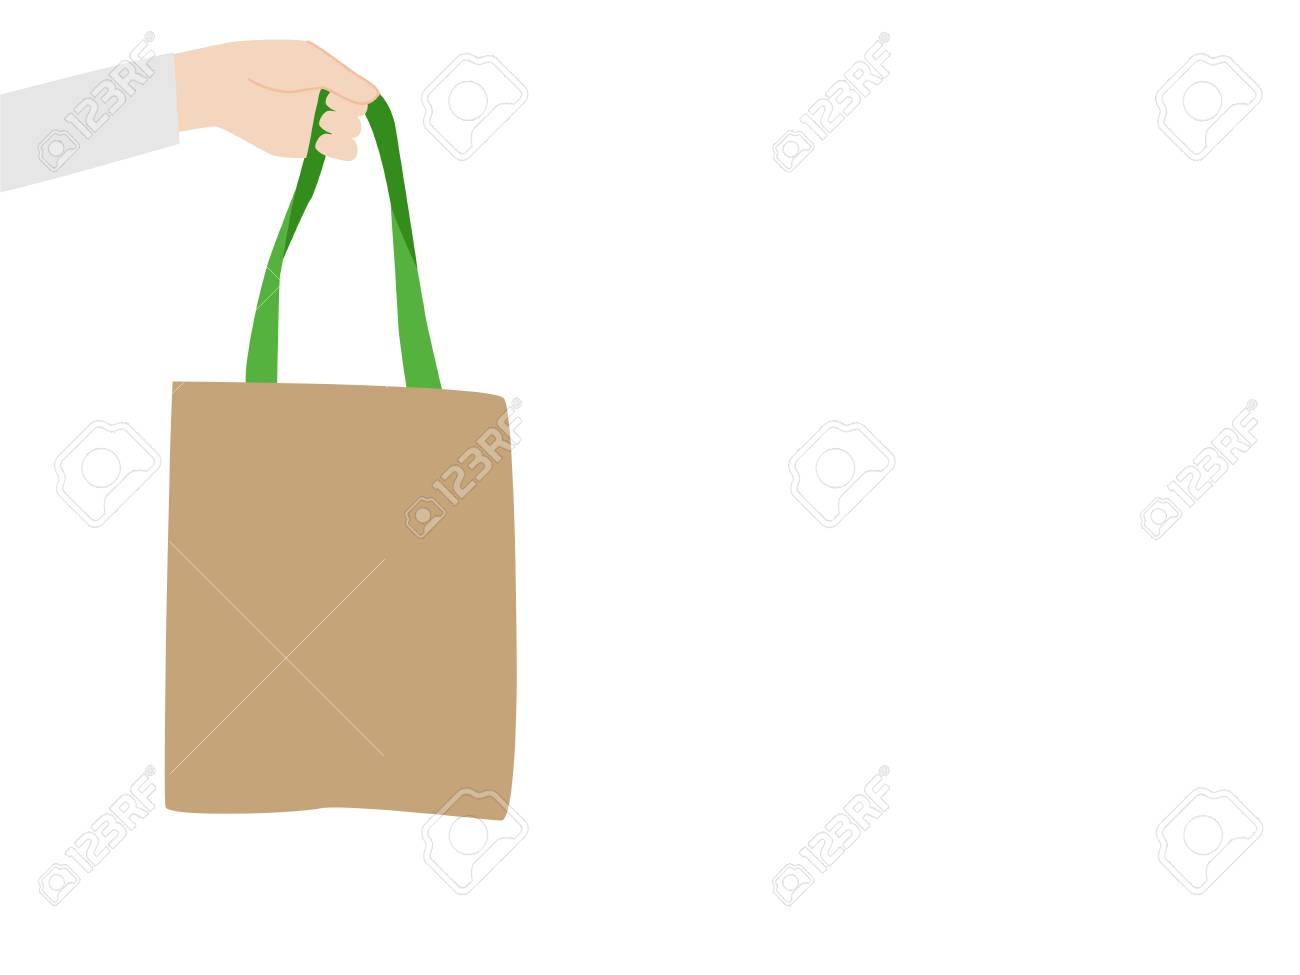 Sav On Bags >> Thank You For Not Using Plastic Bags People Hold Hand Paper